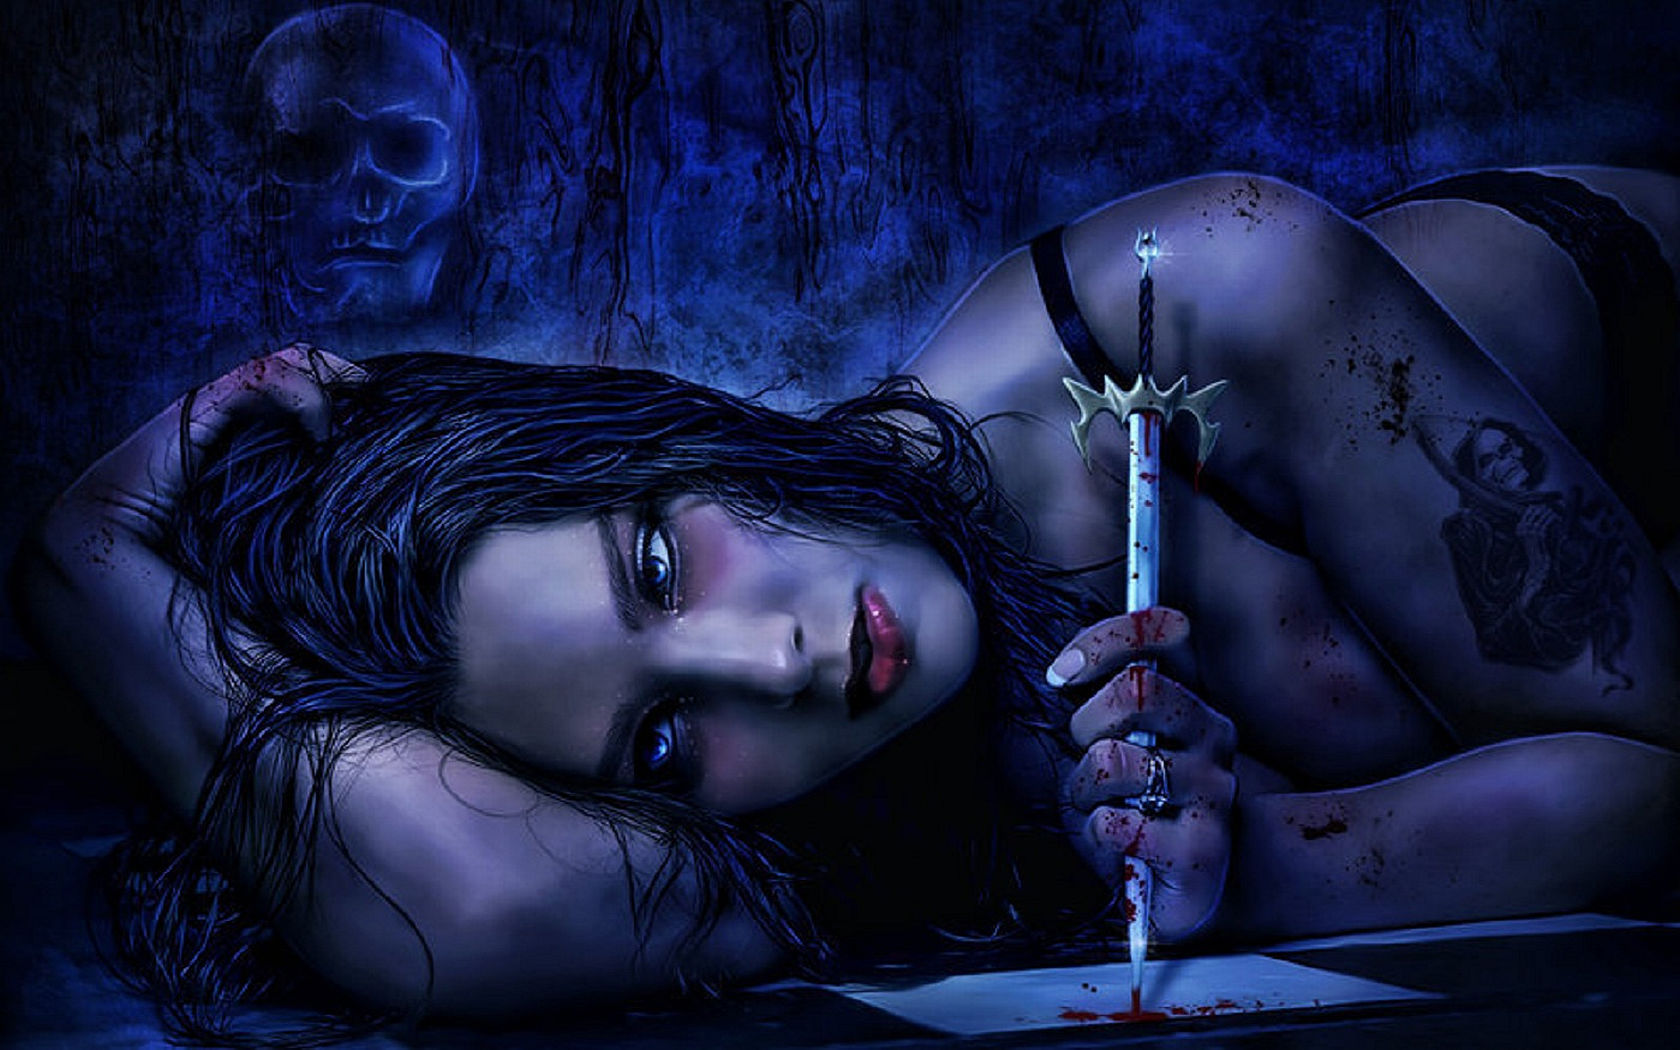 Dark horror gothic fantasy women vampire mood weapons knife wallpaper 1680x1050